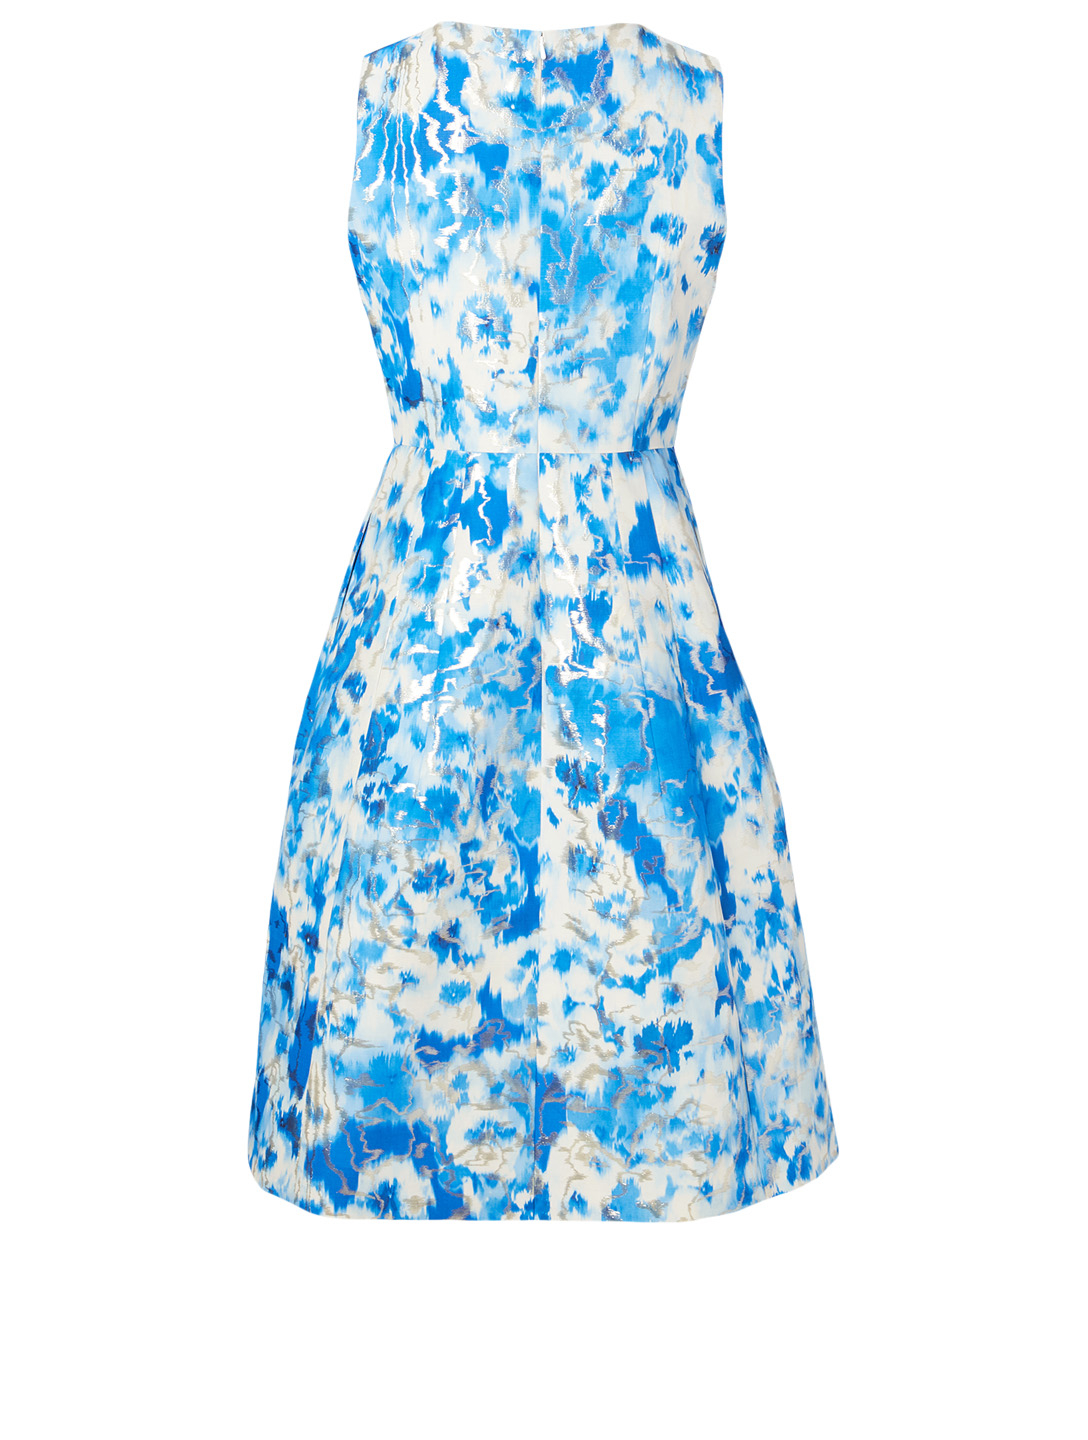 CAROLINA HERRERA Cotton And Silk Printed Dress Women's Blue